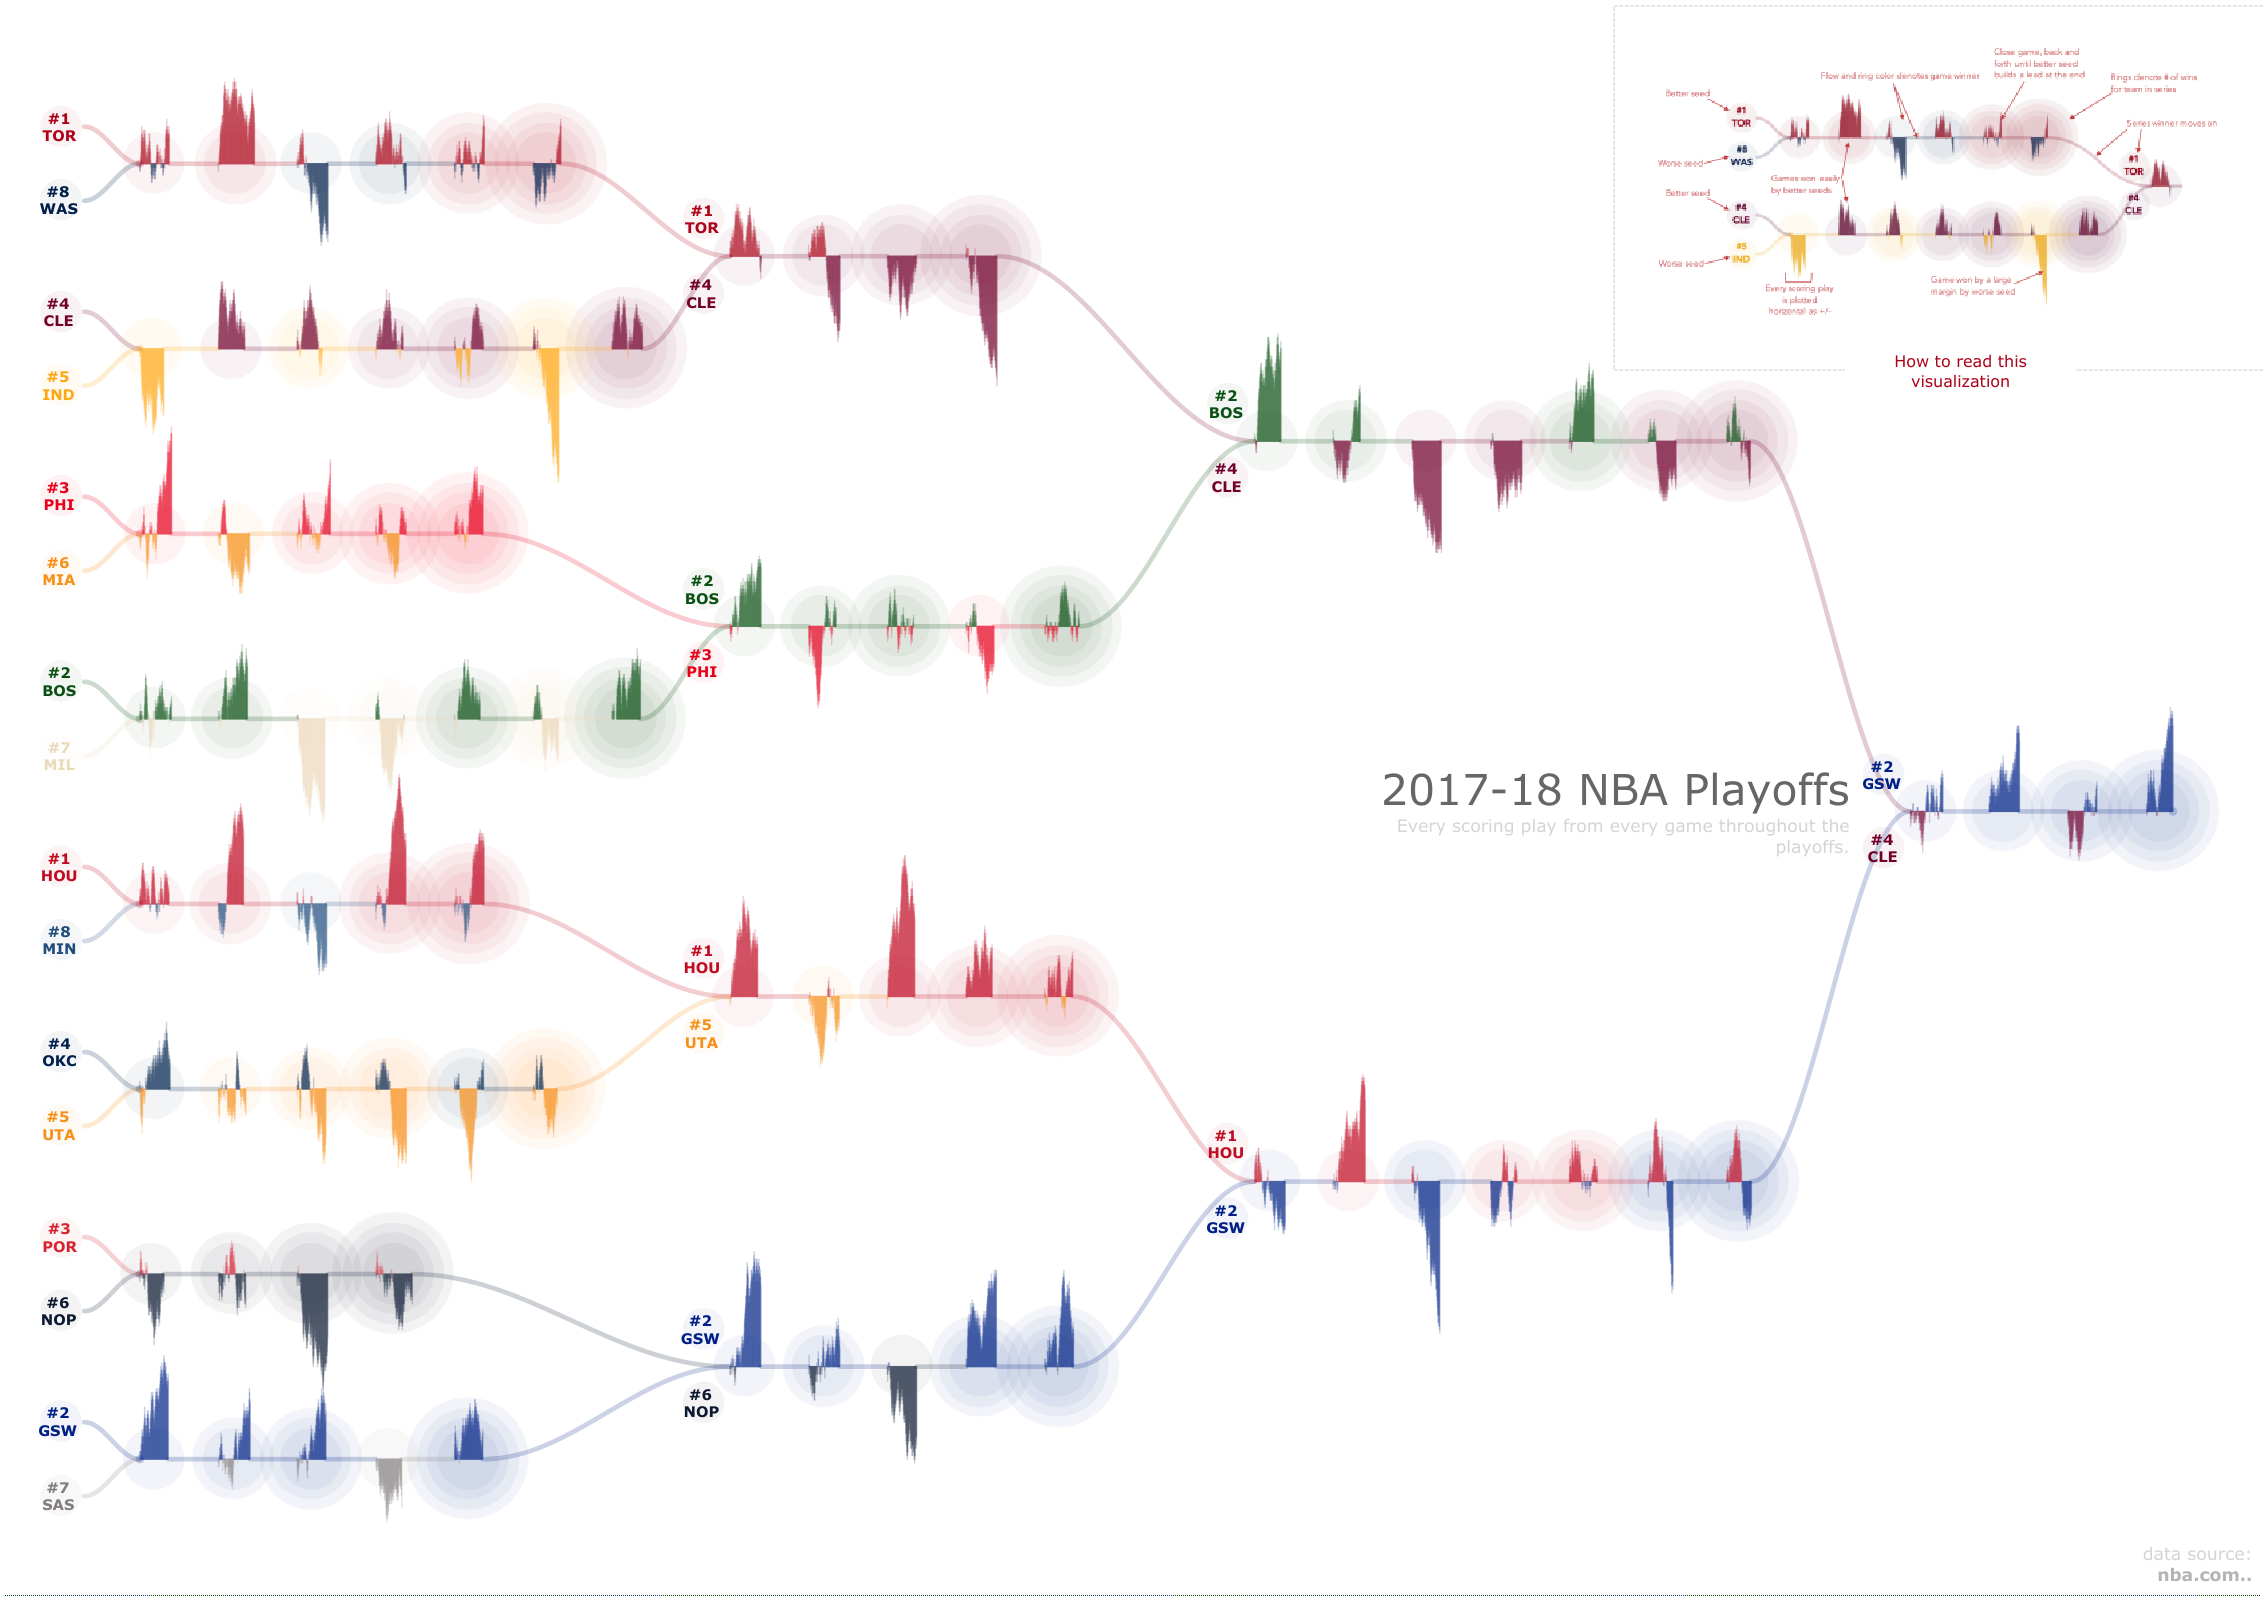 NBA Playoffs 2018 by Chris DeMartini